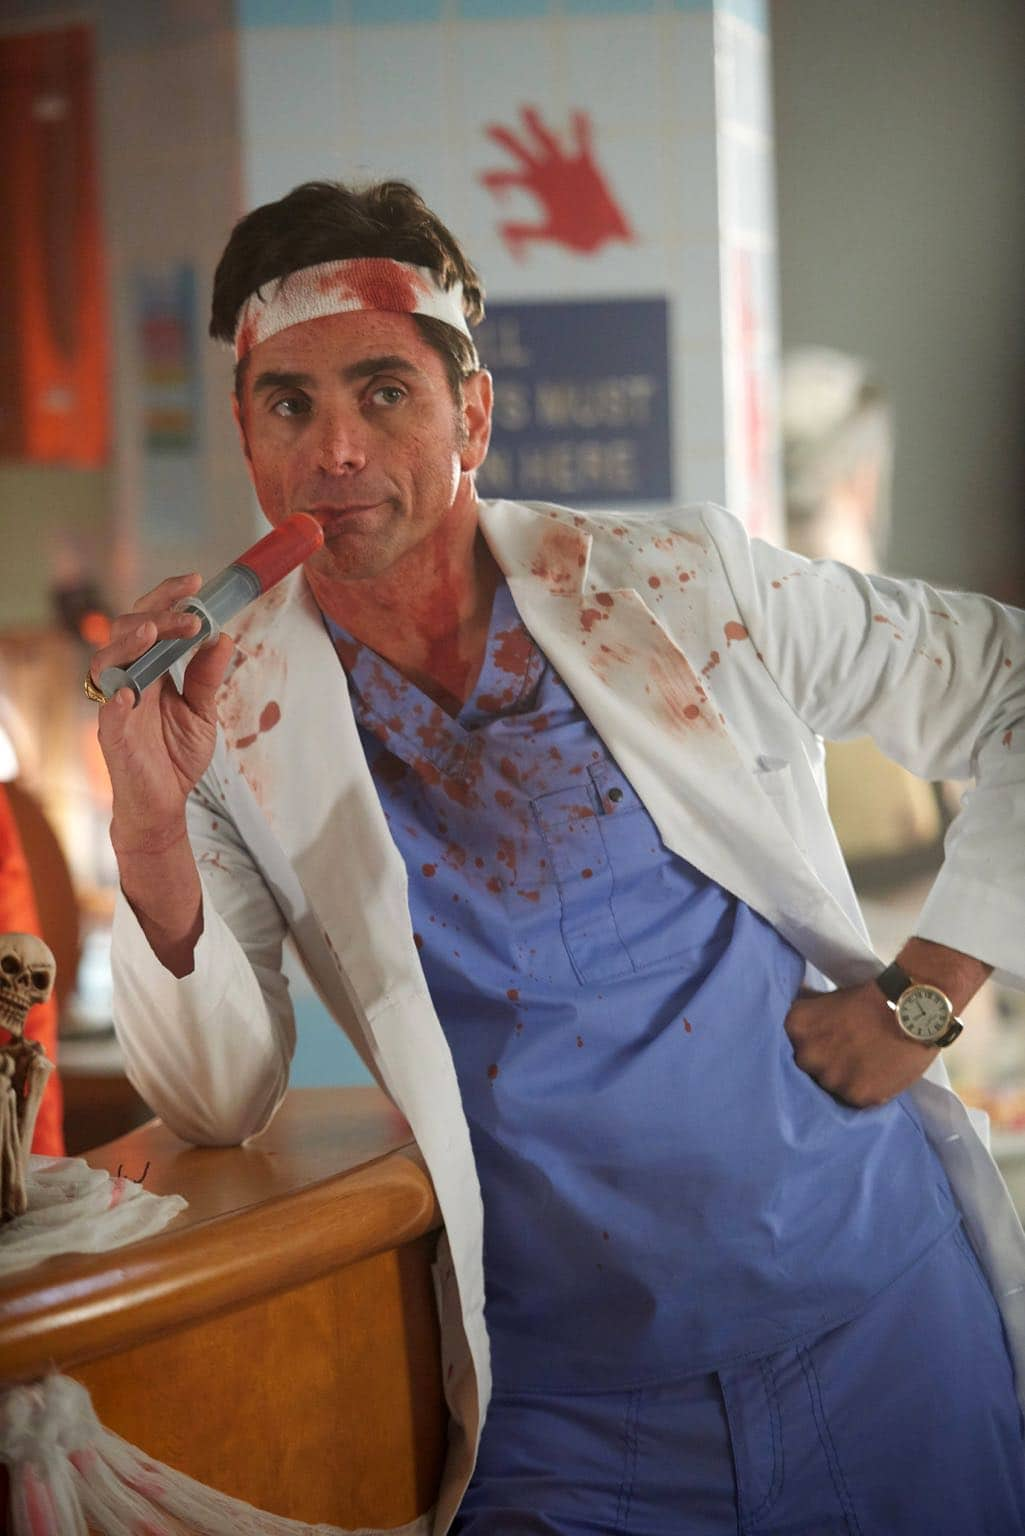 """SCREAM QUEENS: John Stamos in the all-new """"Halloween Blues"""" episode of SCREAM QUEENS airing Tuesday, Oct. 18 (9:01-10:00 PM ET/PT) on FOX. Cr: Michael Becker / FOX. © 2016 FOX Broadcasting Co."""